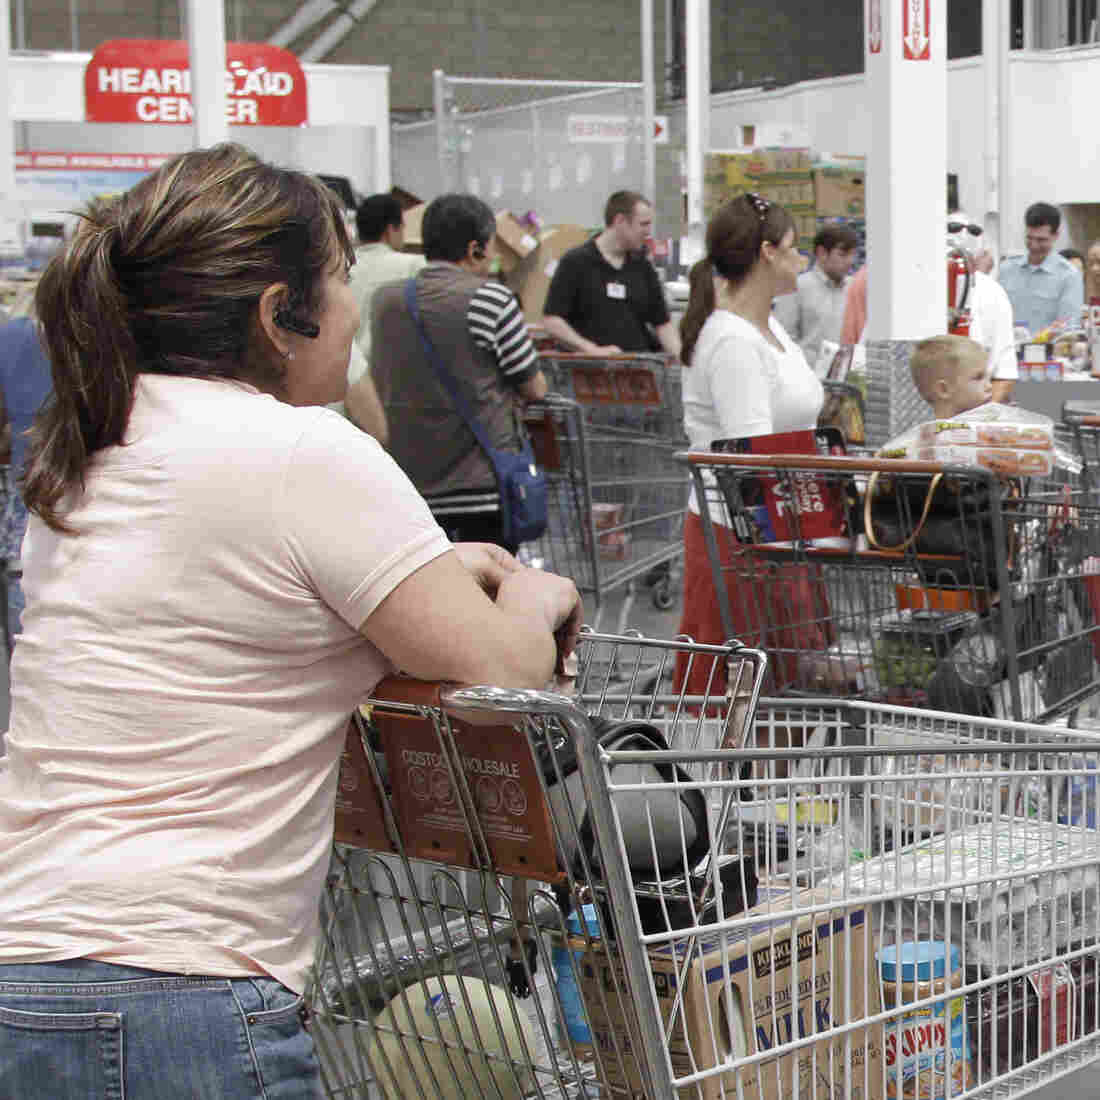 Shoppers get ready to pay at Costco Wholesale in Mountain View, Calif. For the next couple of weeks, Californians whose insurance was canceled have some unusual options, including an Aetna plan available only at Costco.